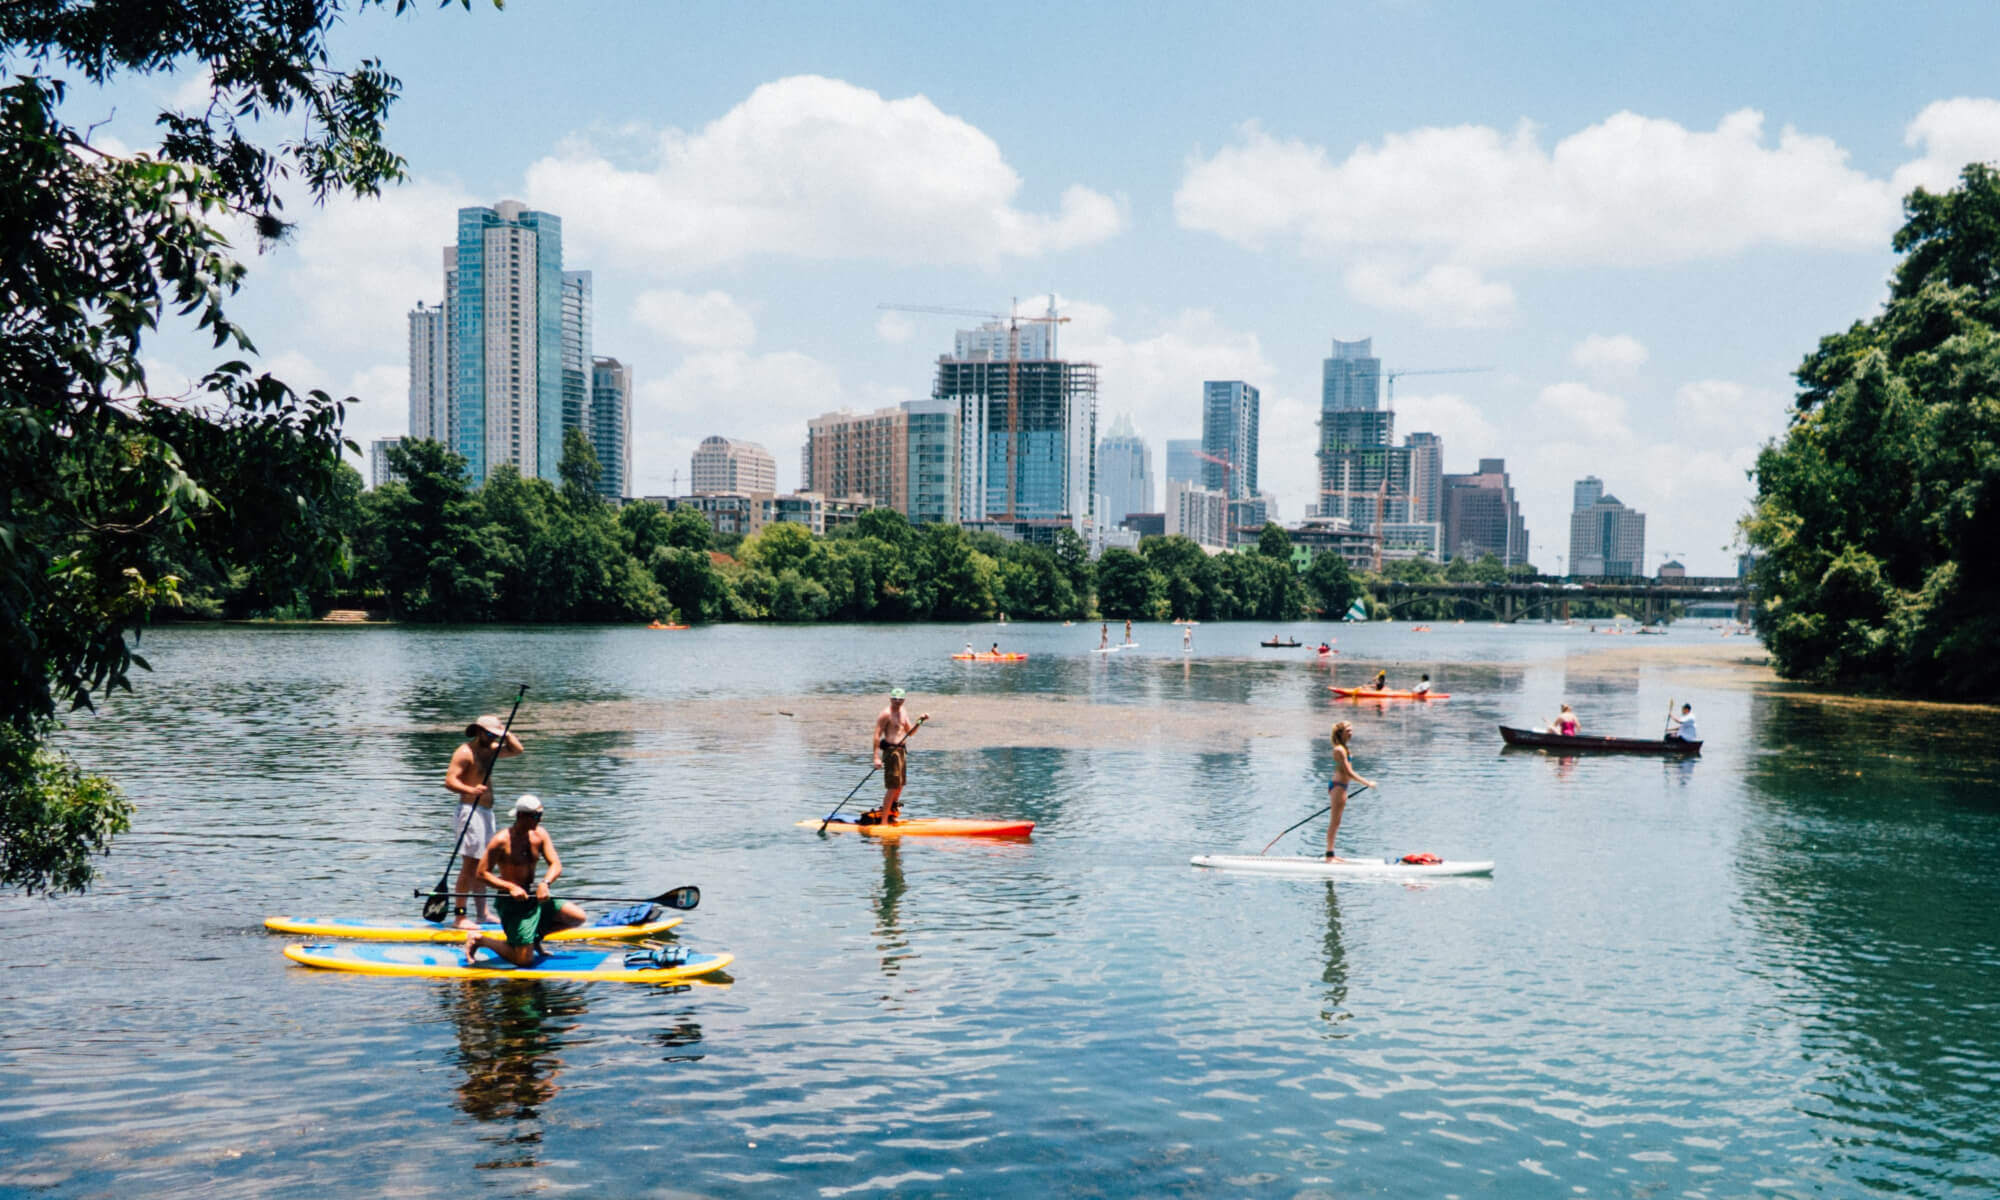 People paddle-boarding on Lady Bird Lake in Austin